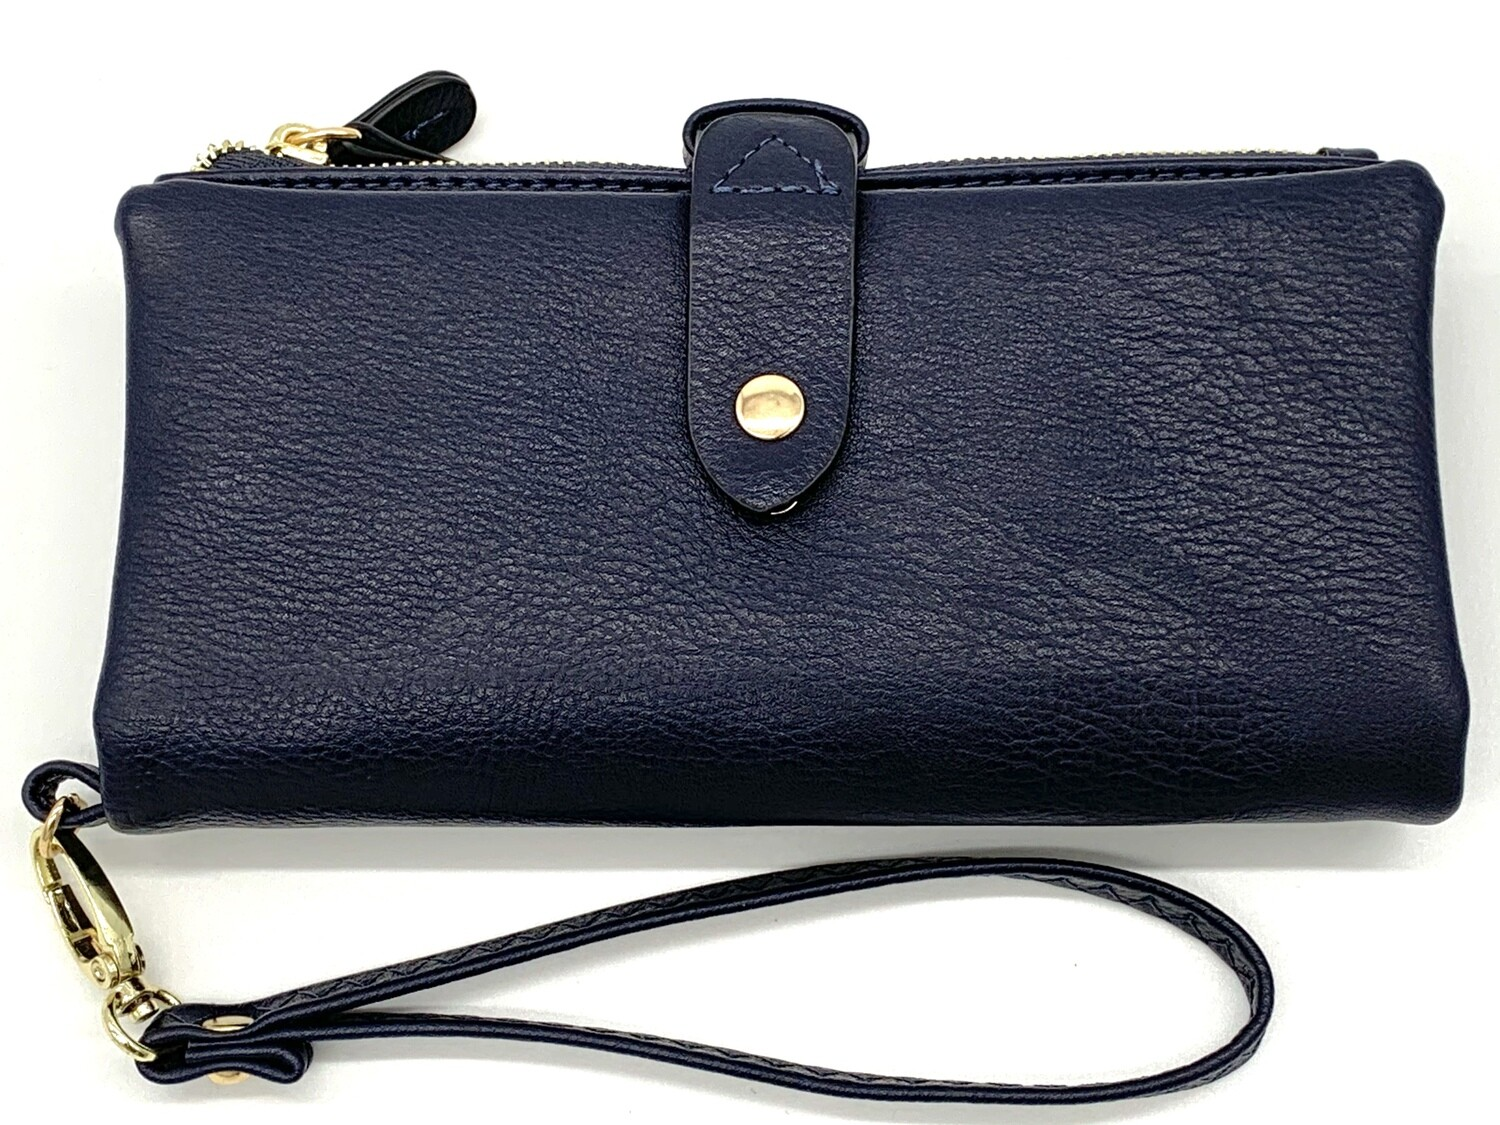 5268 Cell Phone Wristlet/Wallet navy